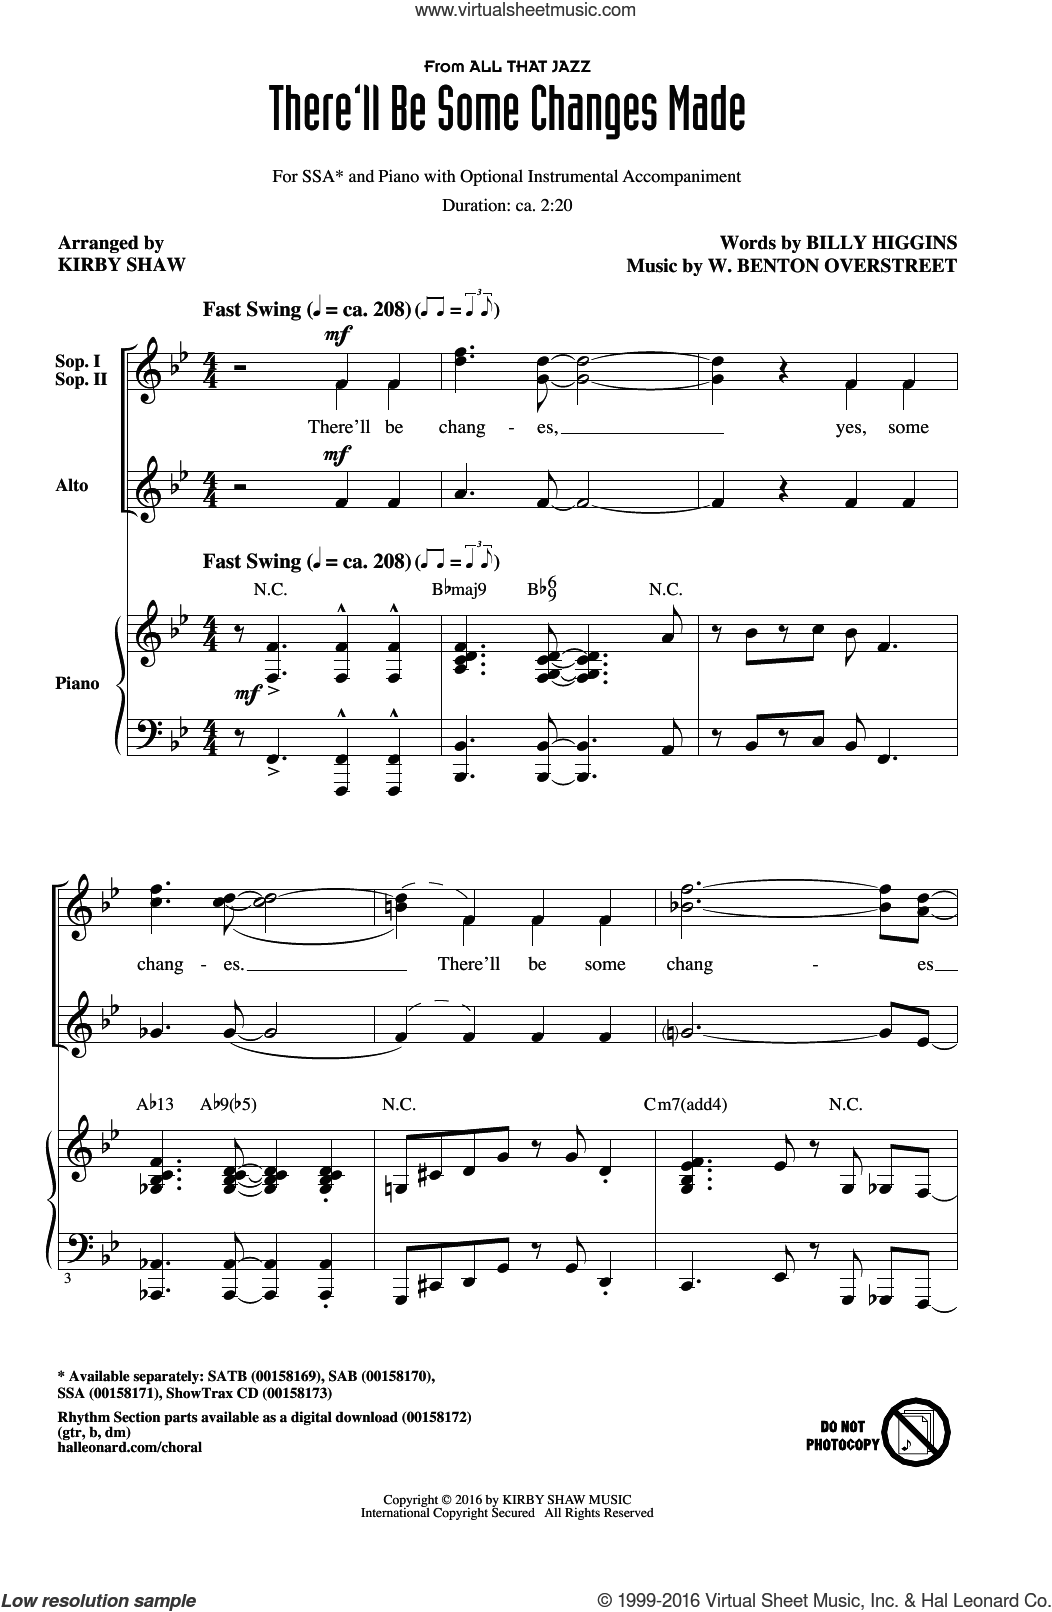 There'll Be Some Changes Made sheet music for choir and piano (SSA) by W. Benton Overstreet